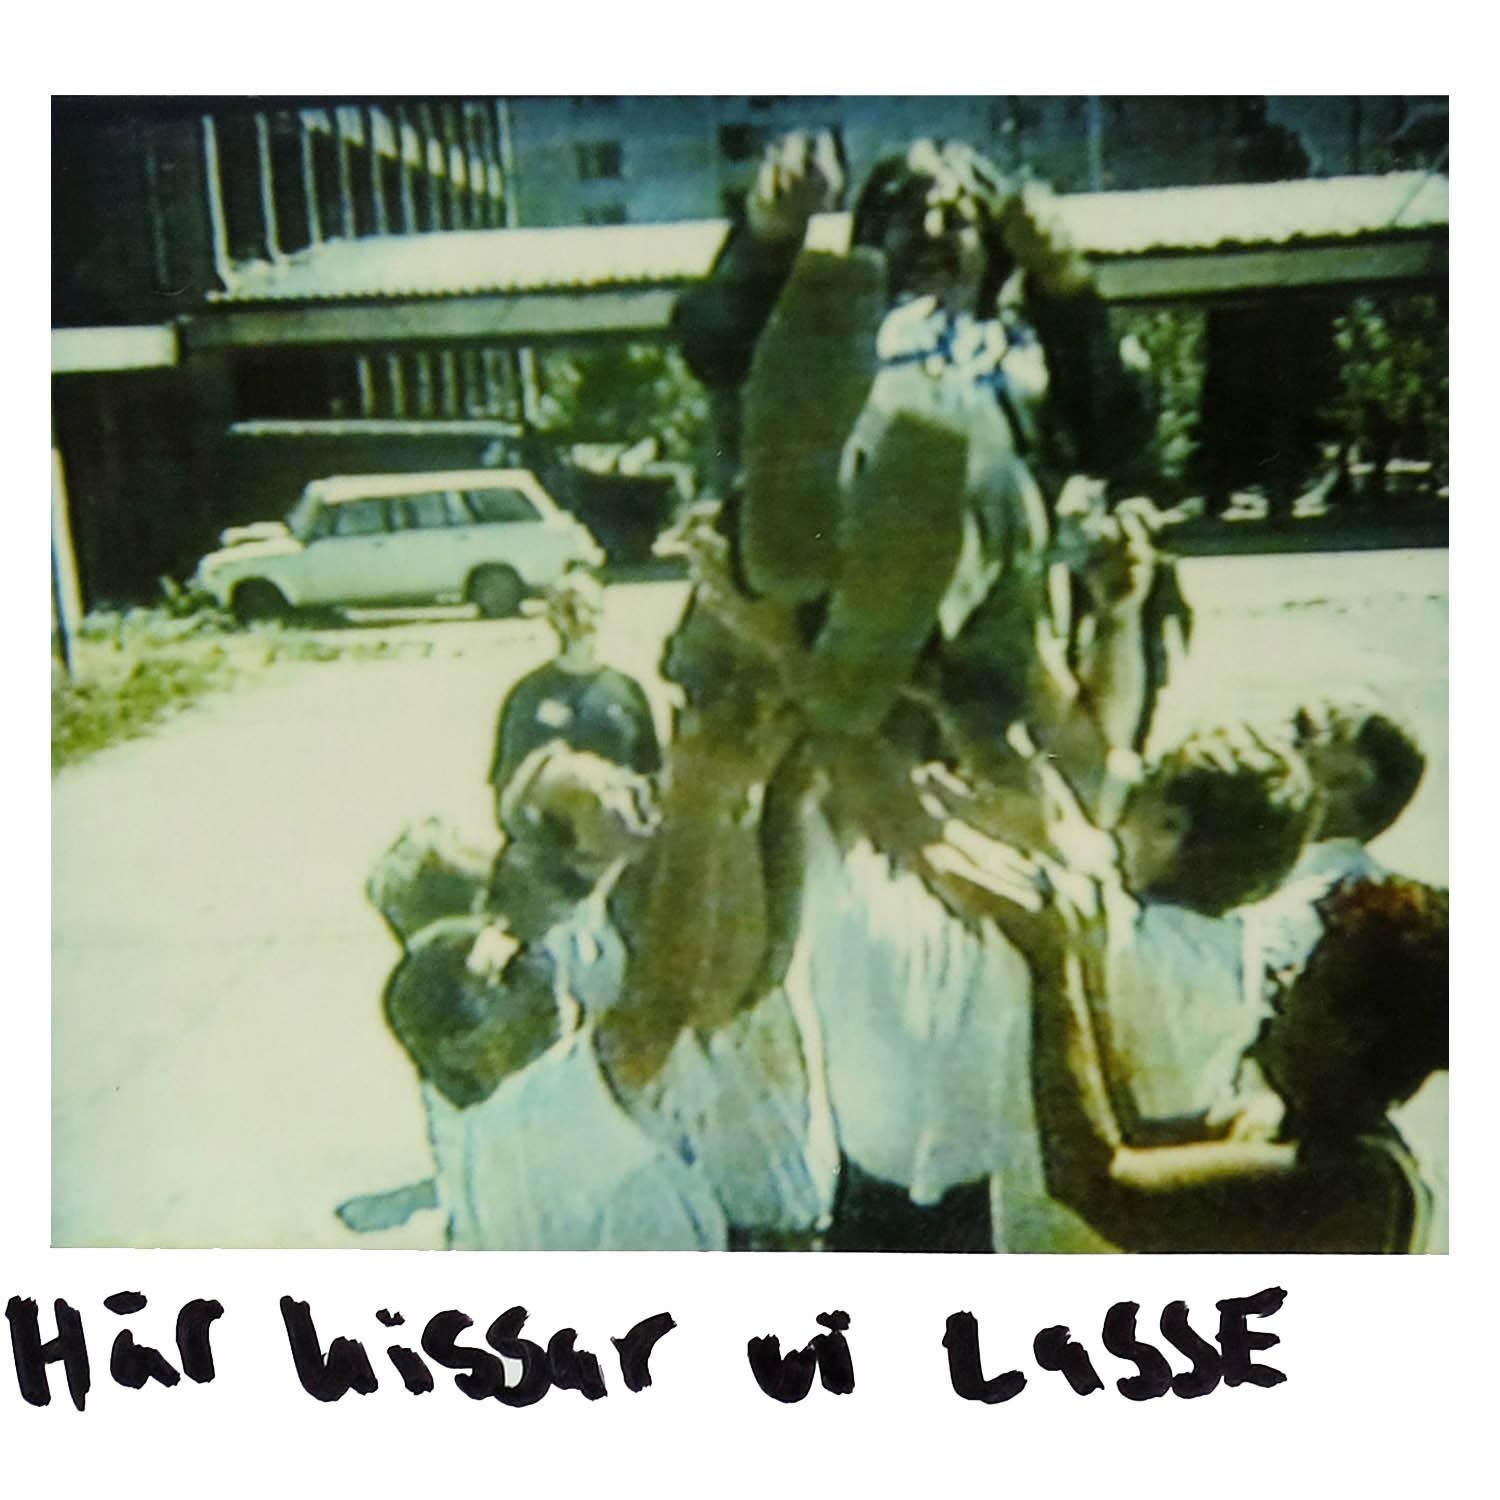 Lasse up in the air